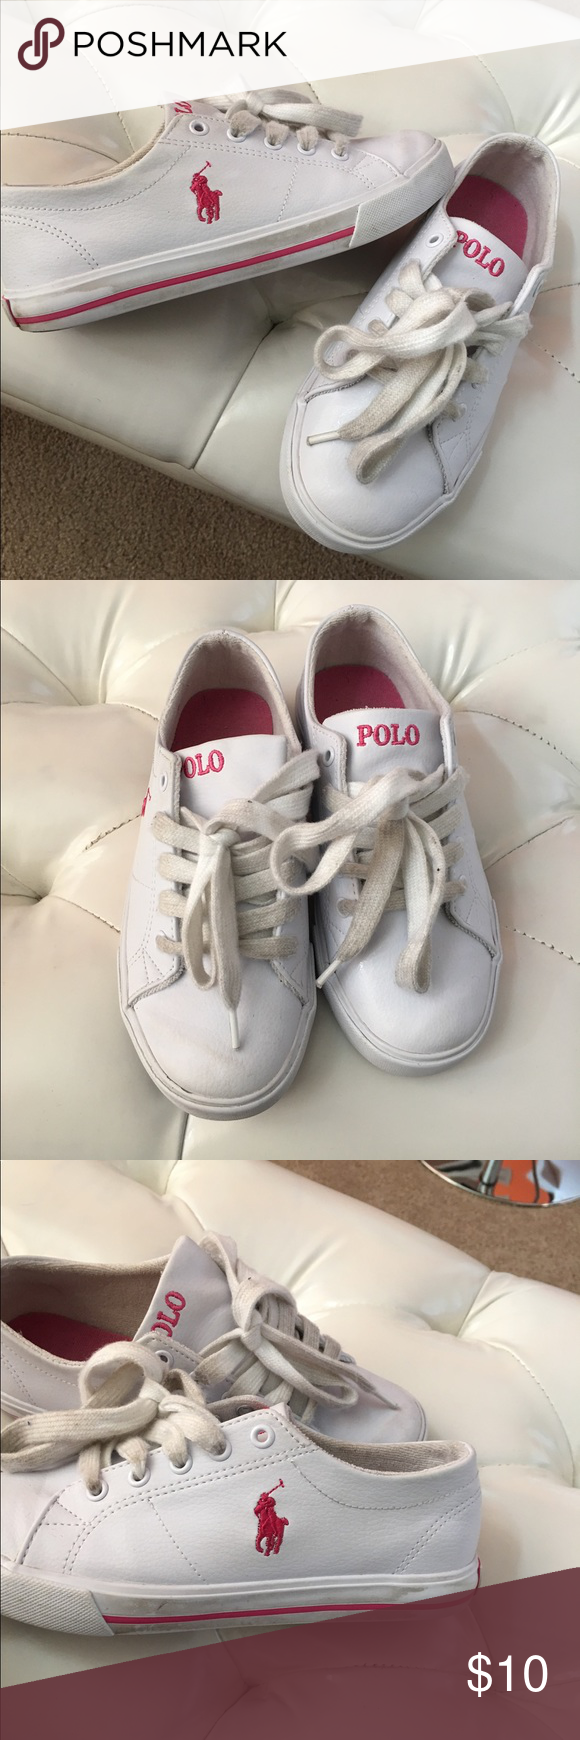 Girls Polo Shoes Girls Polo Shoes; Good Condition; everyday wear; reference pictures; size 2 Polo by Ralph Lauren Shoes Sneakers